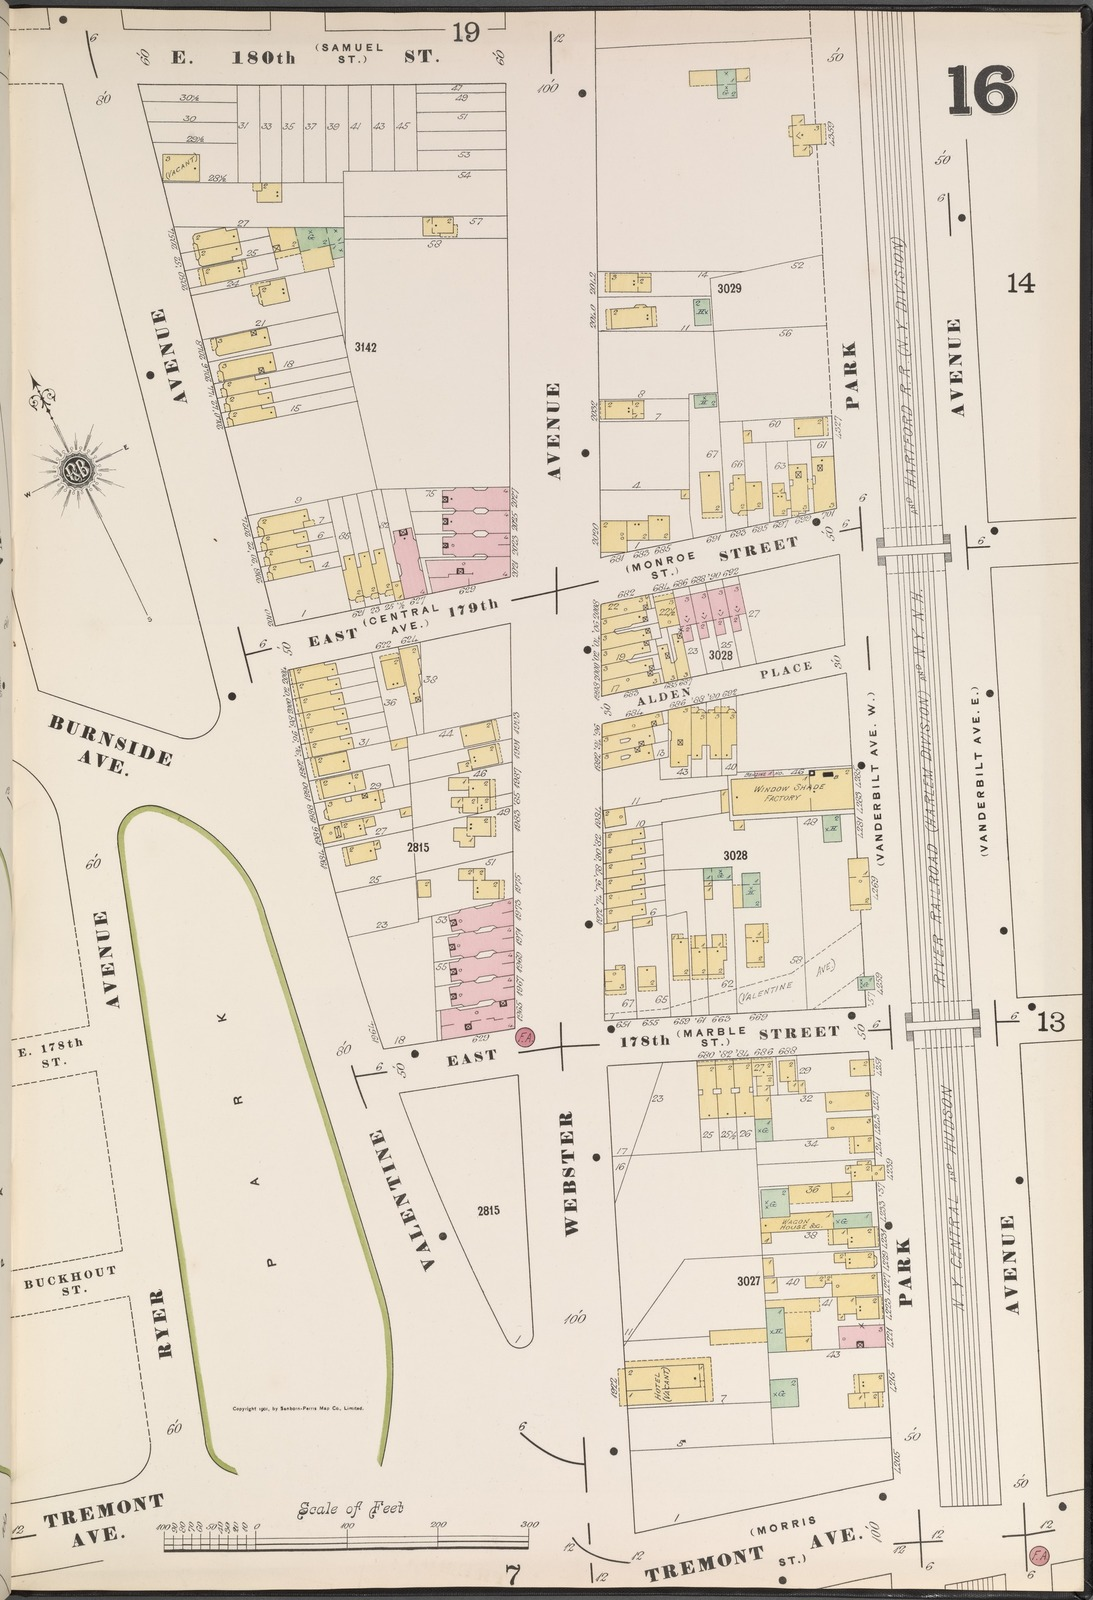 Bronx V 14 Plate No 16 Map Bounded By E 180th St Park Ave Tremont Ave Ryer Ave New York Public Library S Public Domain Image